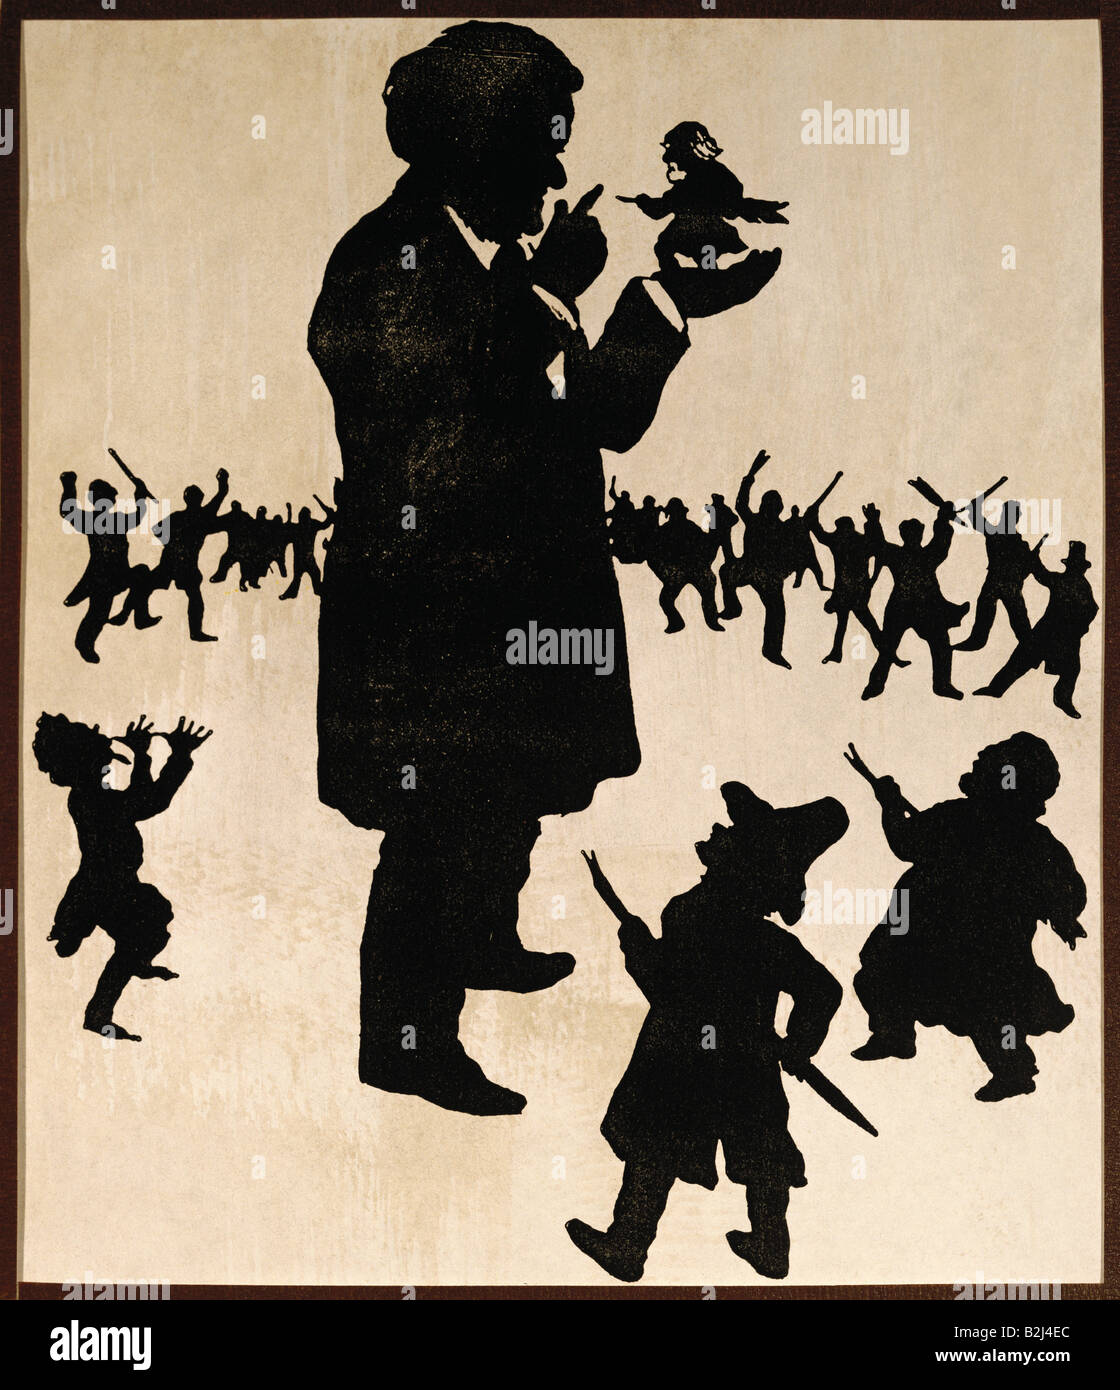 Wagner, Richard, 22.5.1813 - 13.2.1883, German composer, caricature, with his objectors and cristics, silhouette - Stock Image